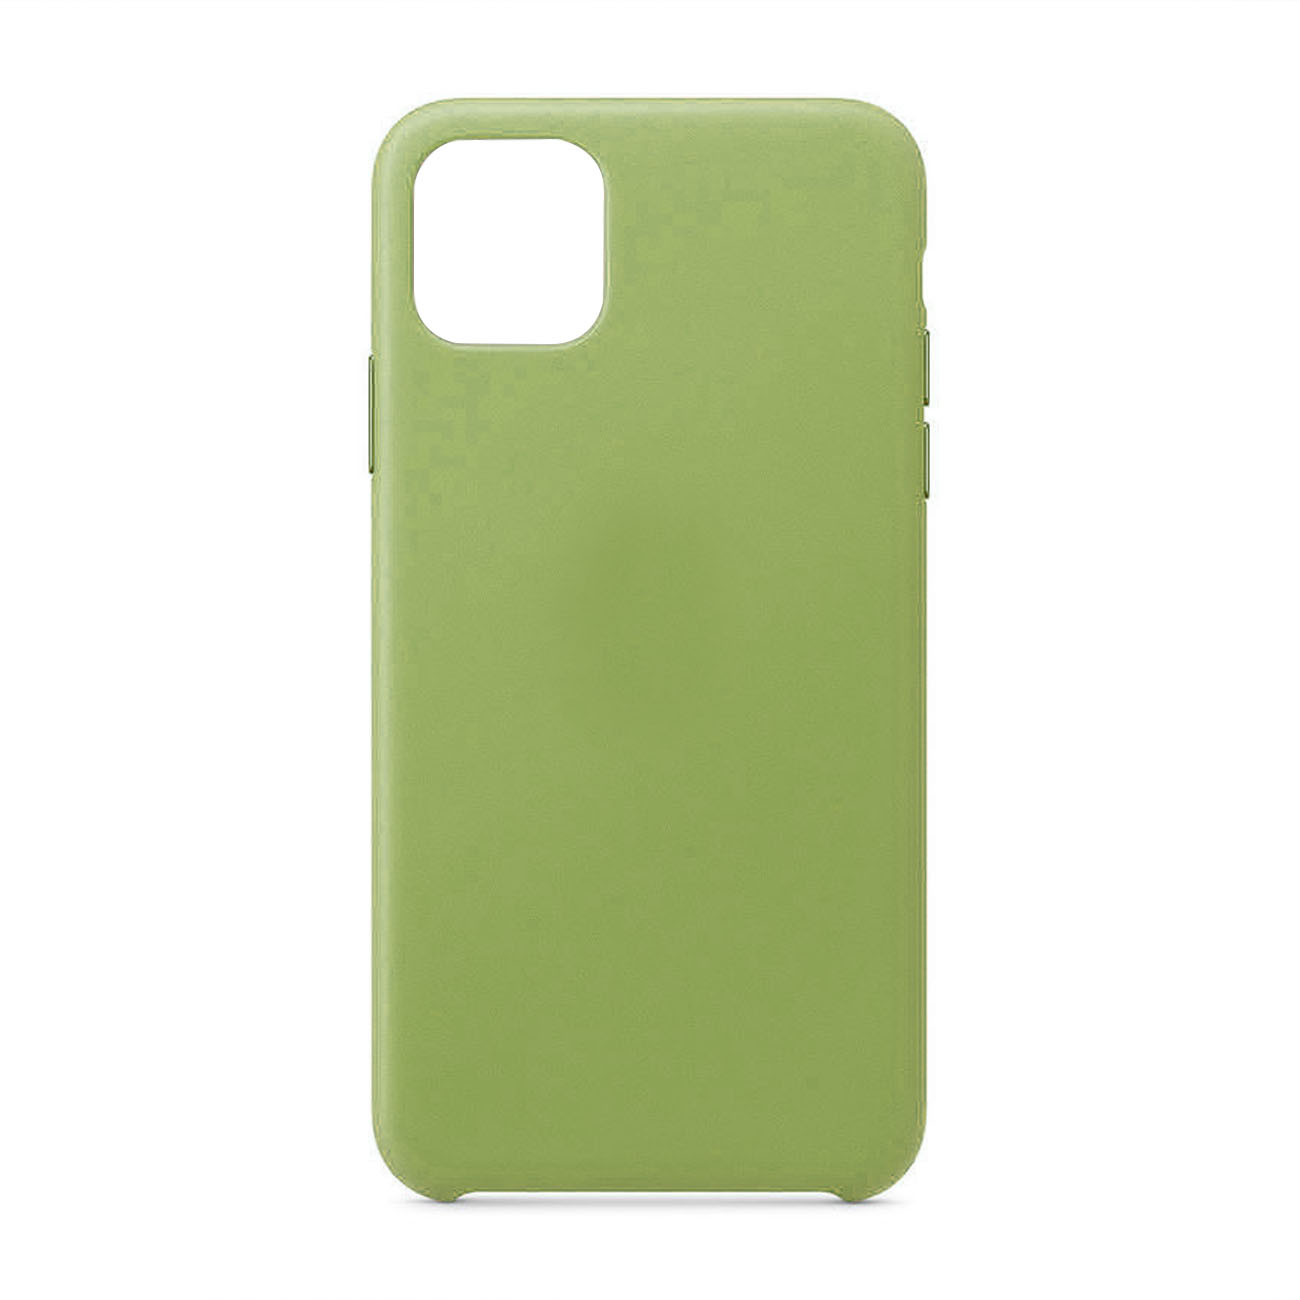 Reiko Apple iPhone 11 Gummy Cases In Green